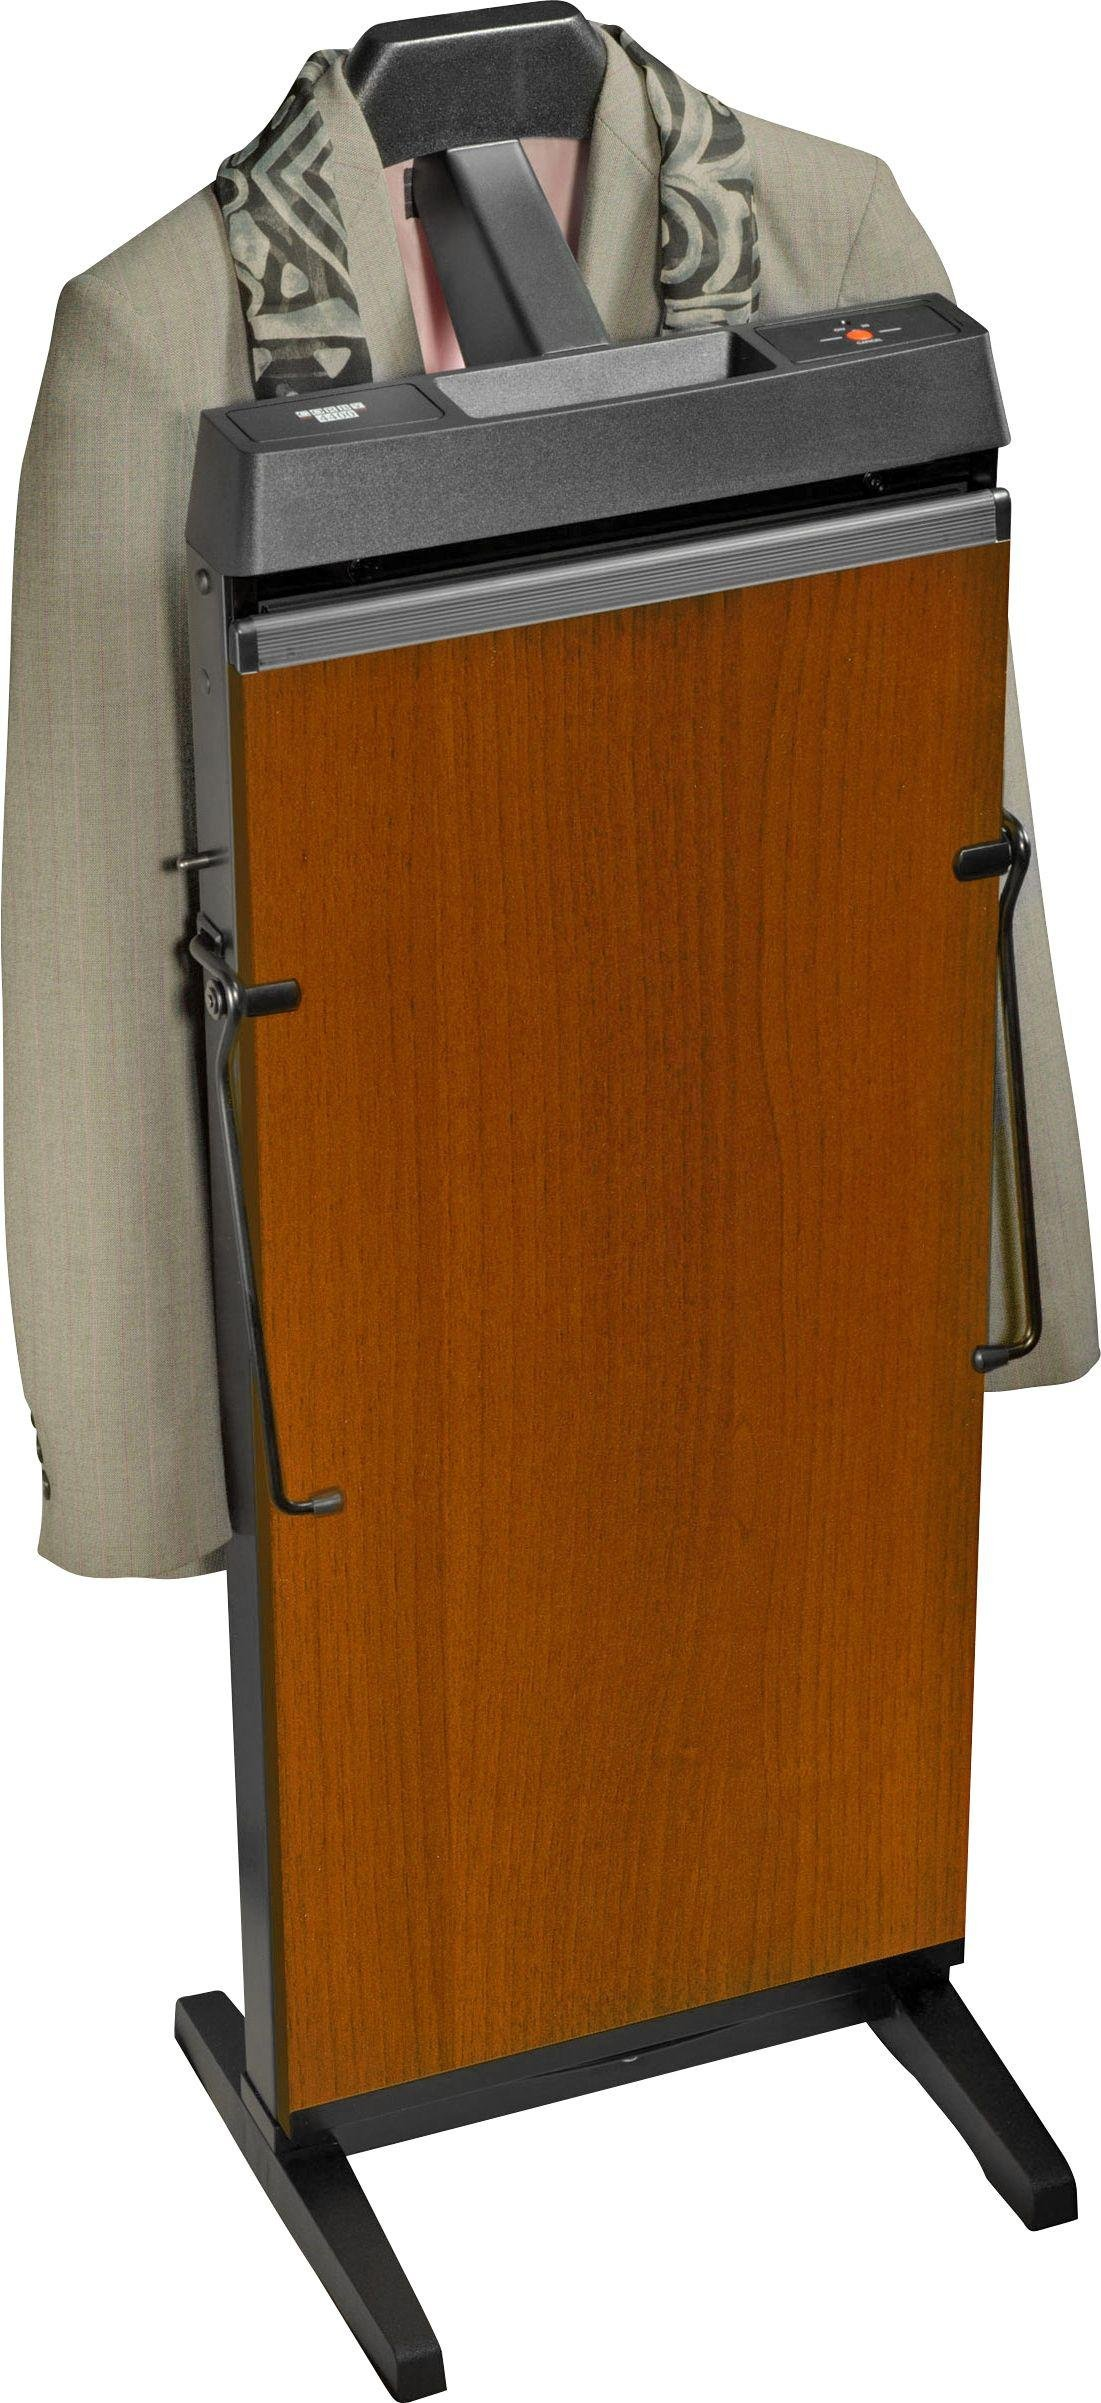 Image of Corby 3300 Trouser Press - Walnut.